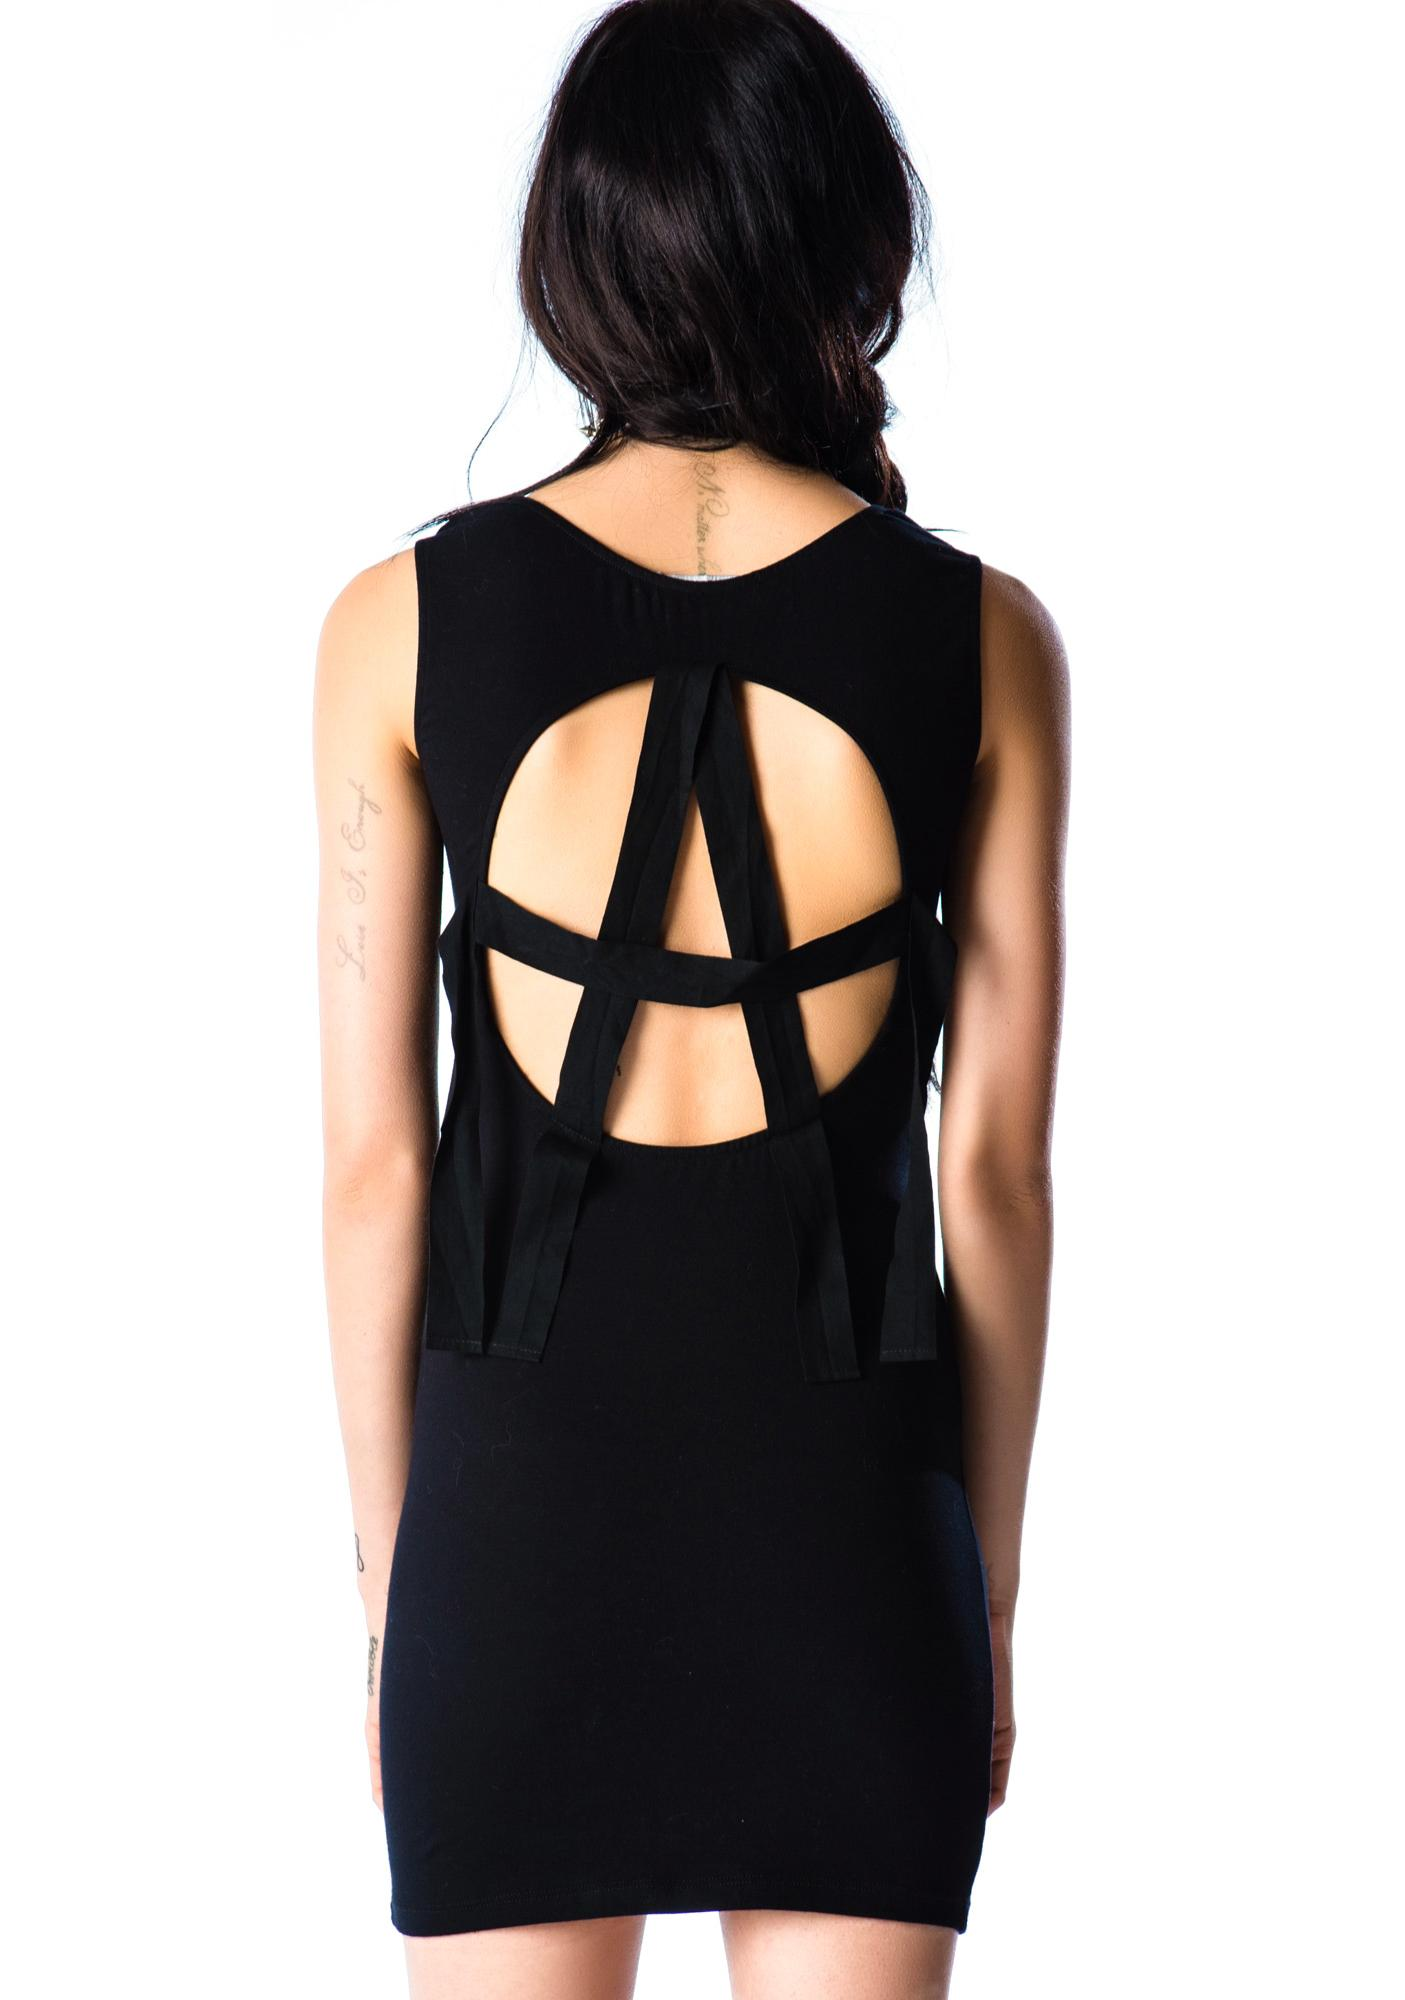 Lip Service Anarchy Back Dress